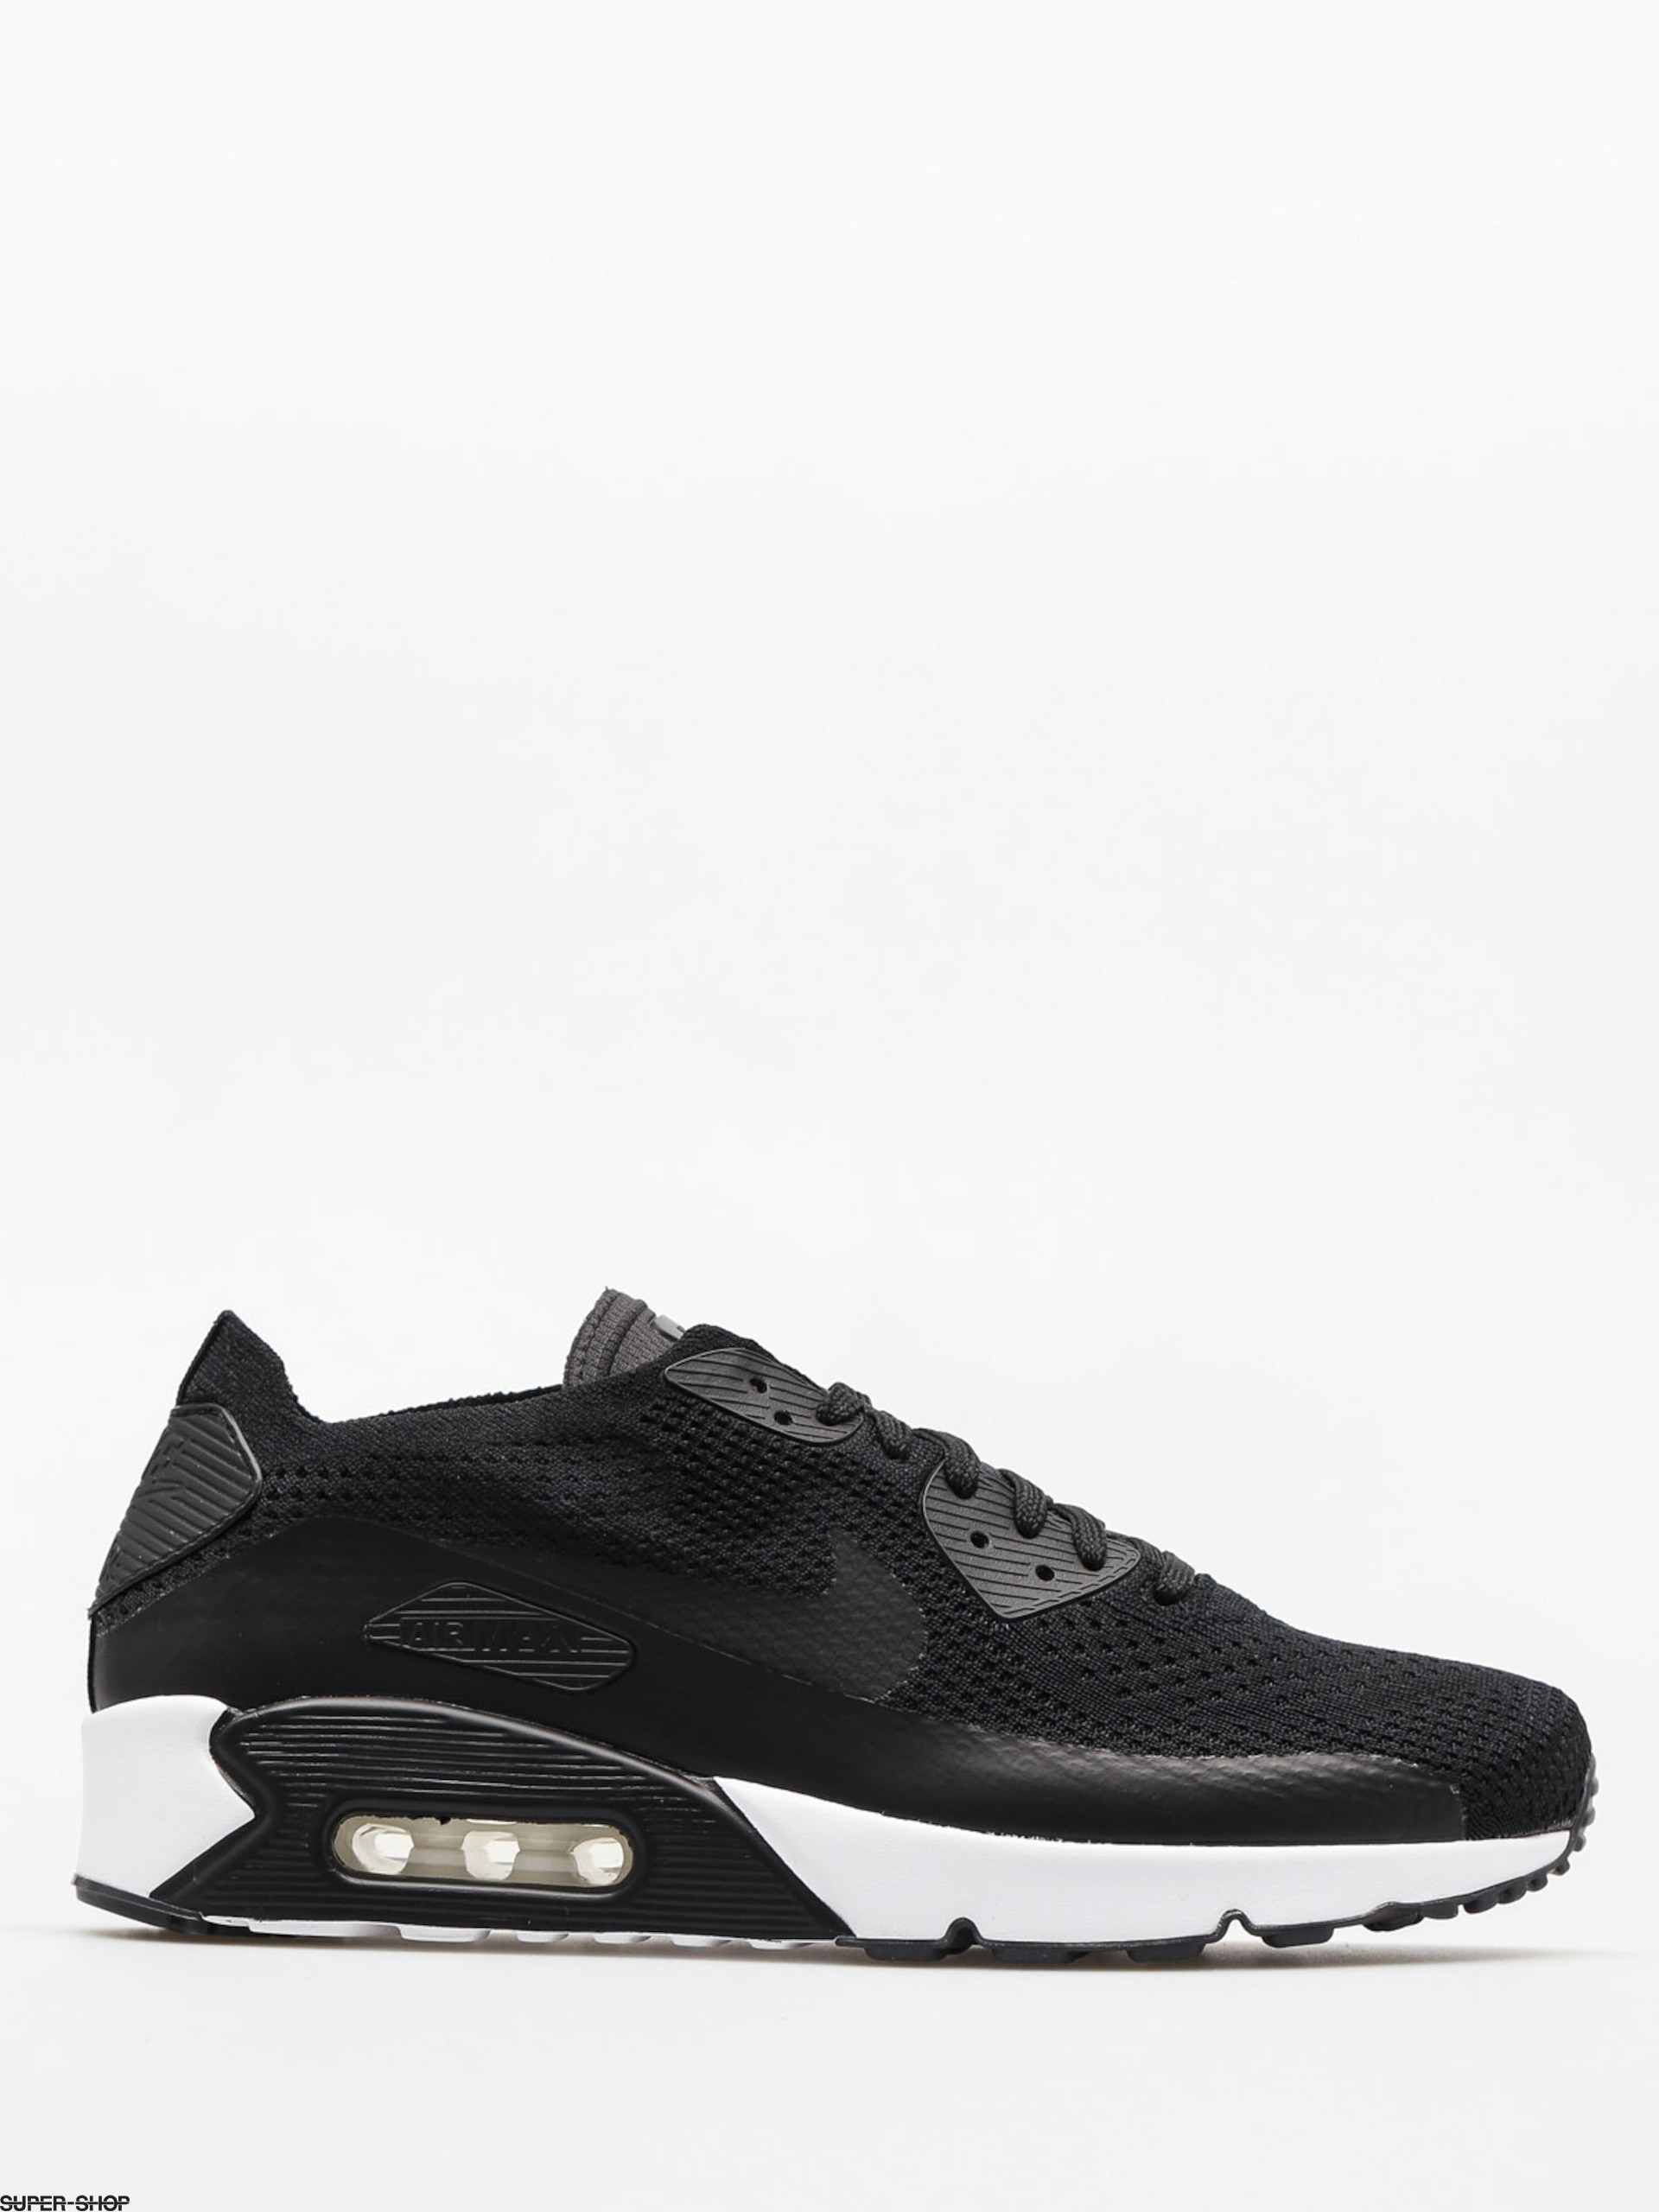 Nike Shoes Air Max 90 (Ultra 2.0 Flyknit black/black black white)